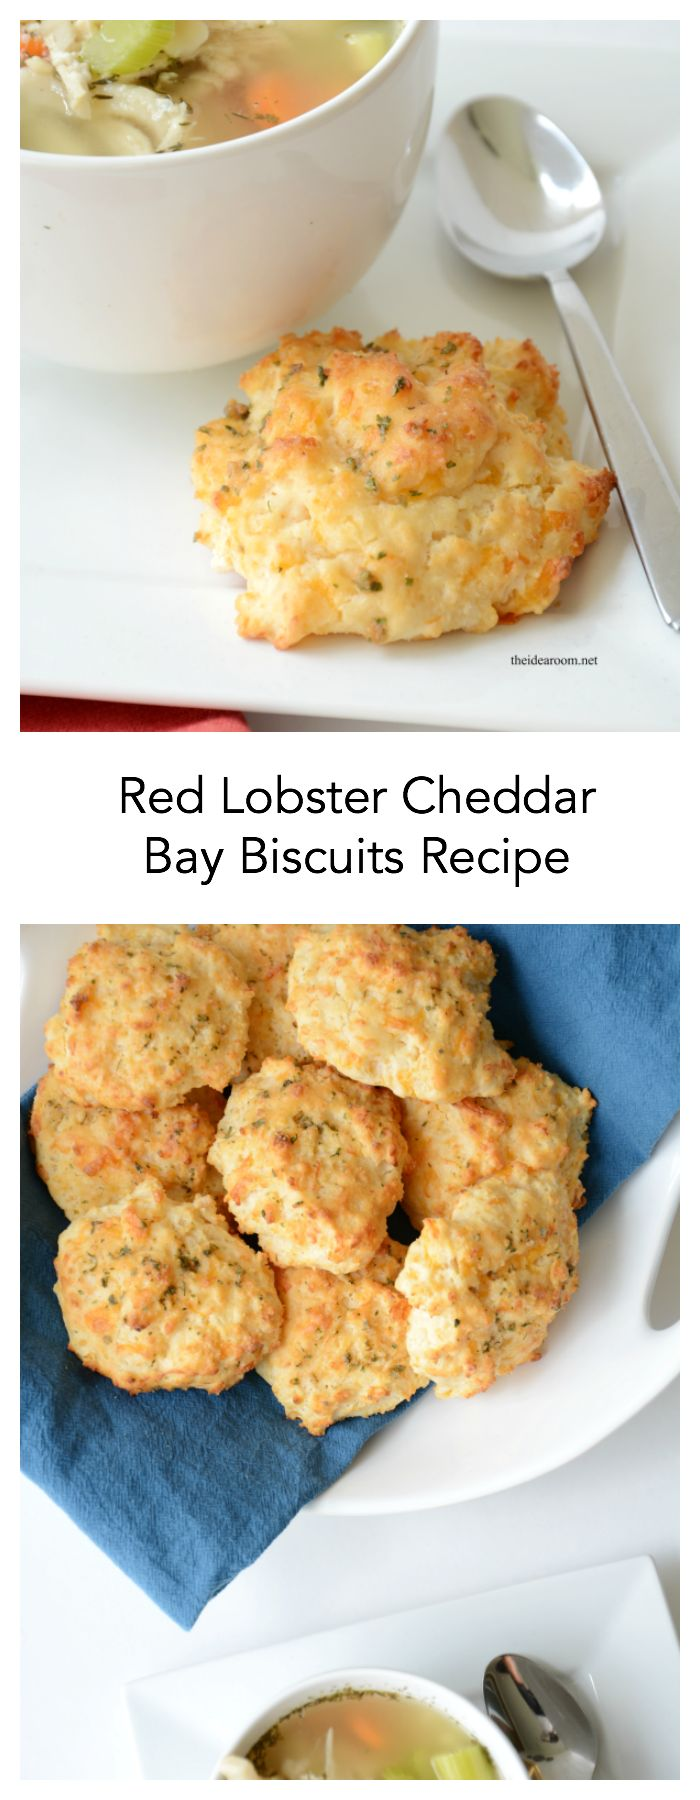 Red Lobster Cheddar Biscuits Recipe This will be so exciting, get ready to take pleasure in it also. See more at http://www.thrivingparenthood.com/video-10-fantastic-breakfast-recipes-for-kids